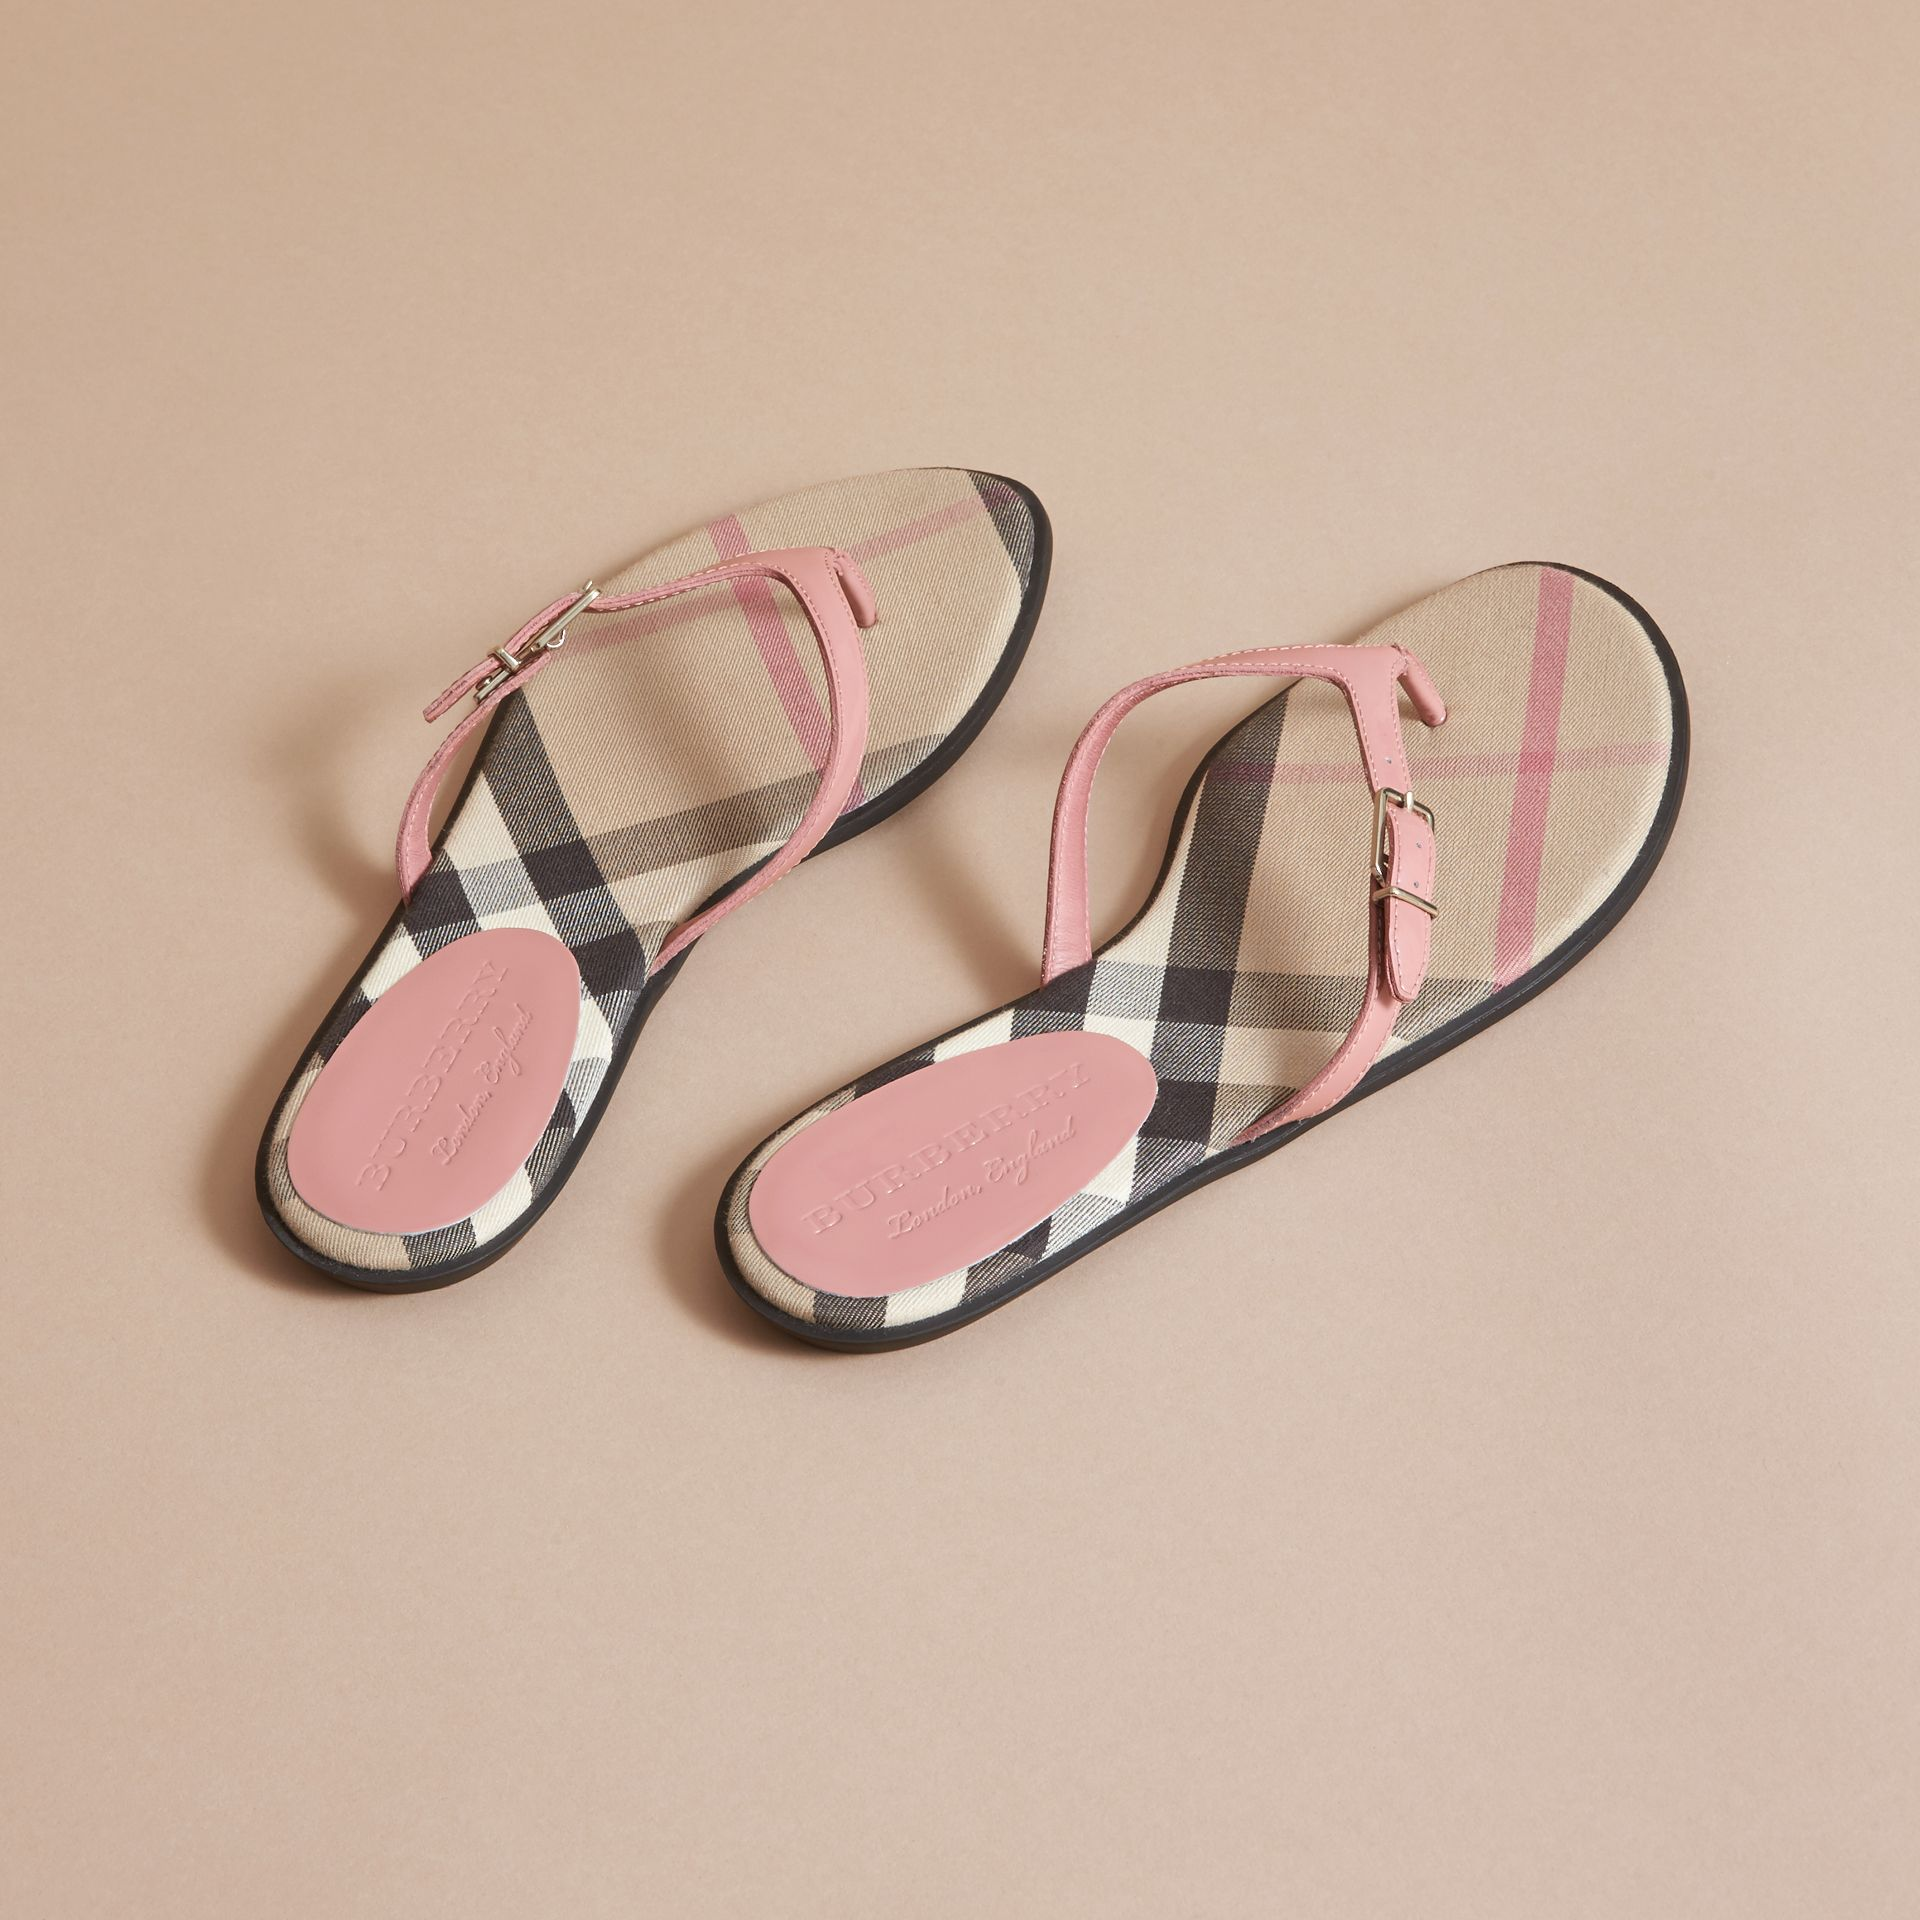 House Check and Patent Leather Sandals in Nude Pink - Women | Burberry - gallery image 3